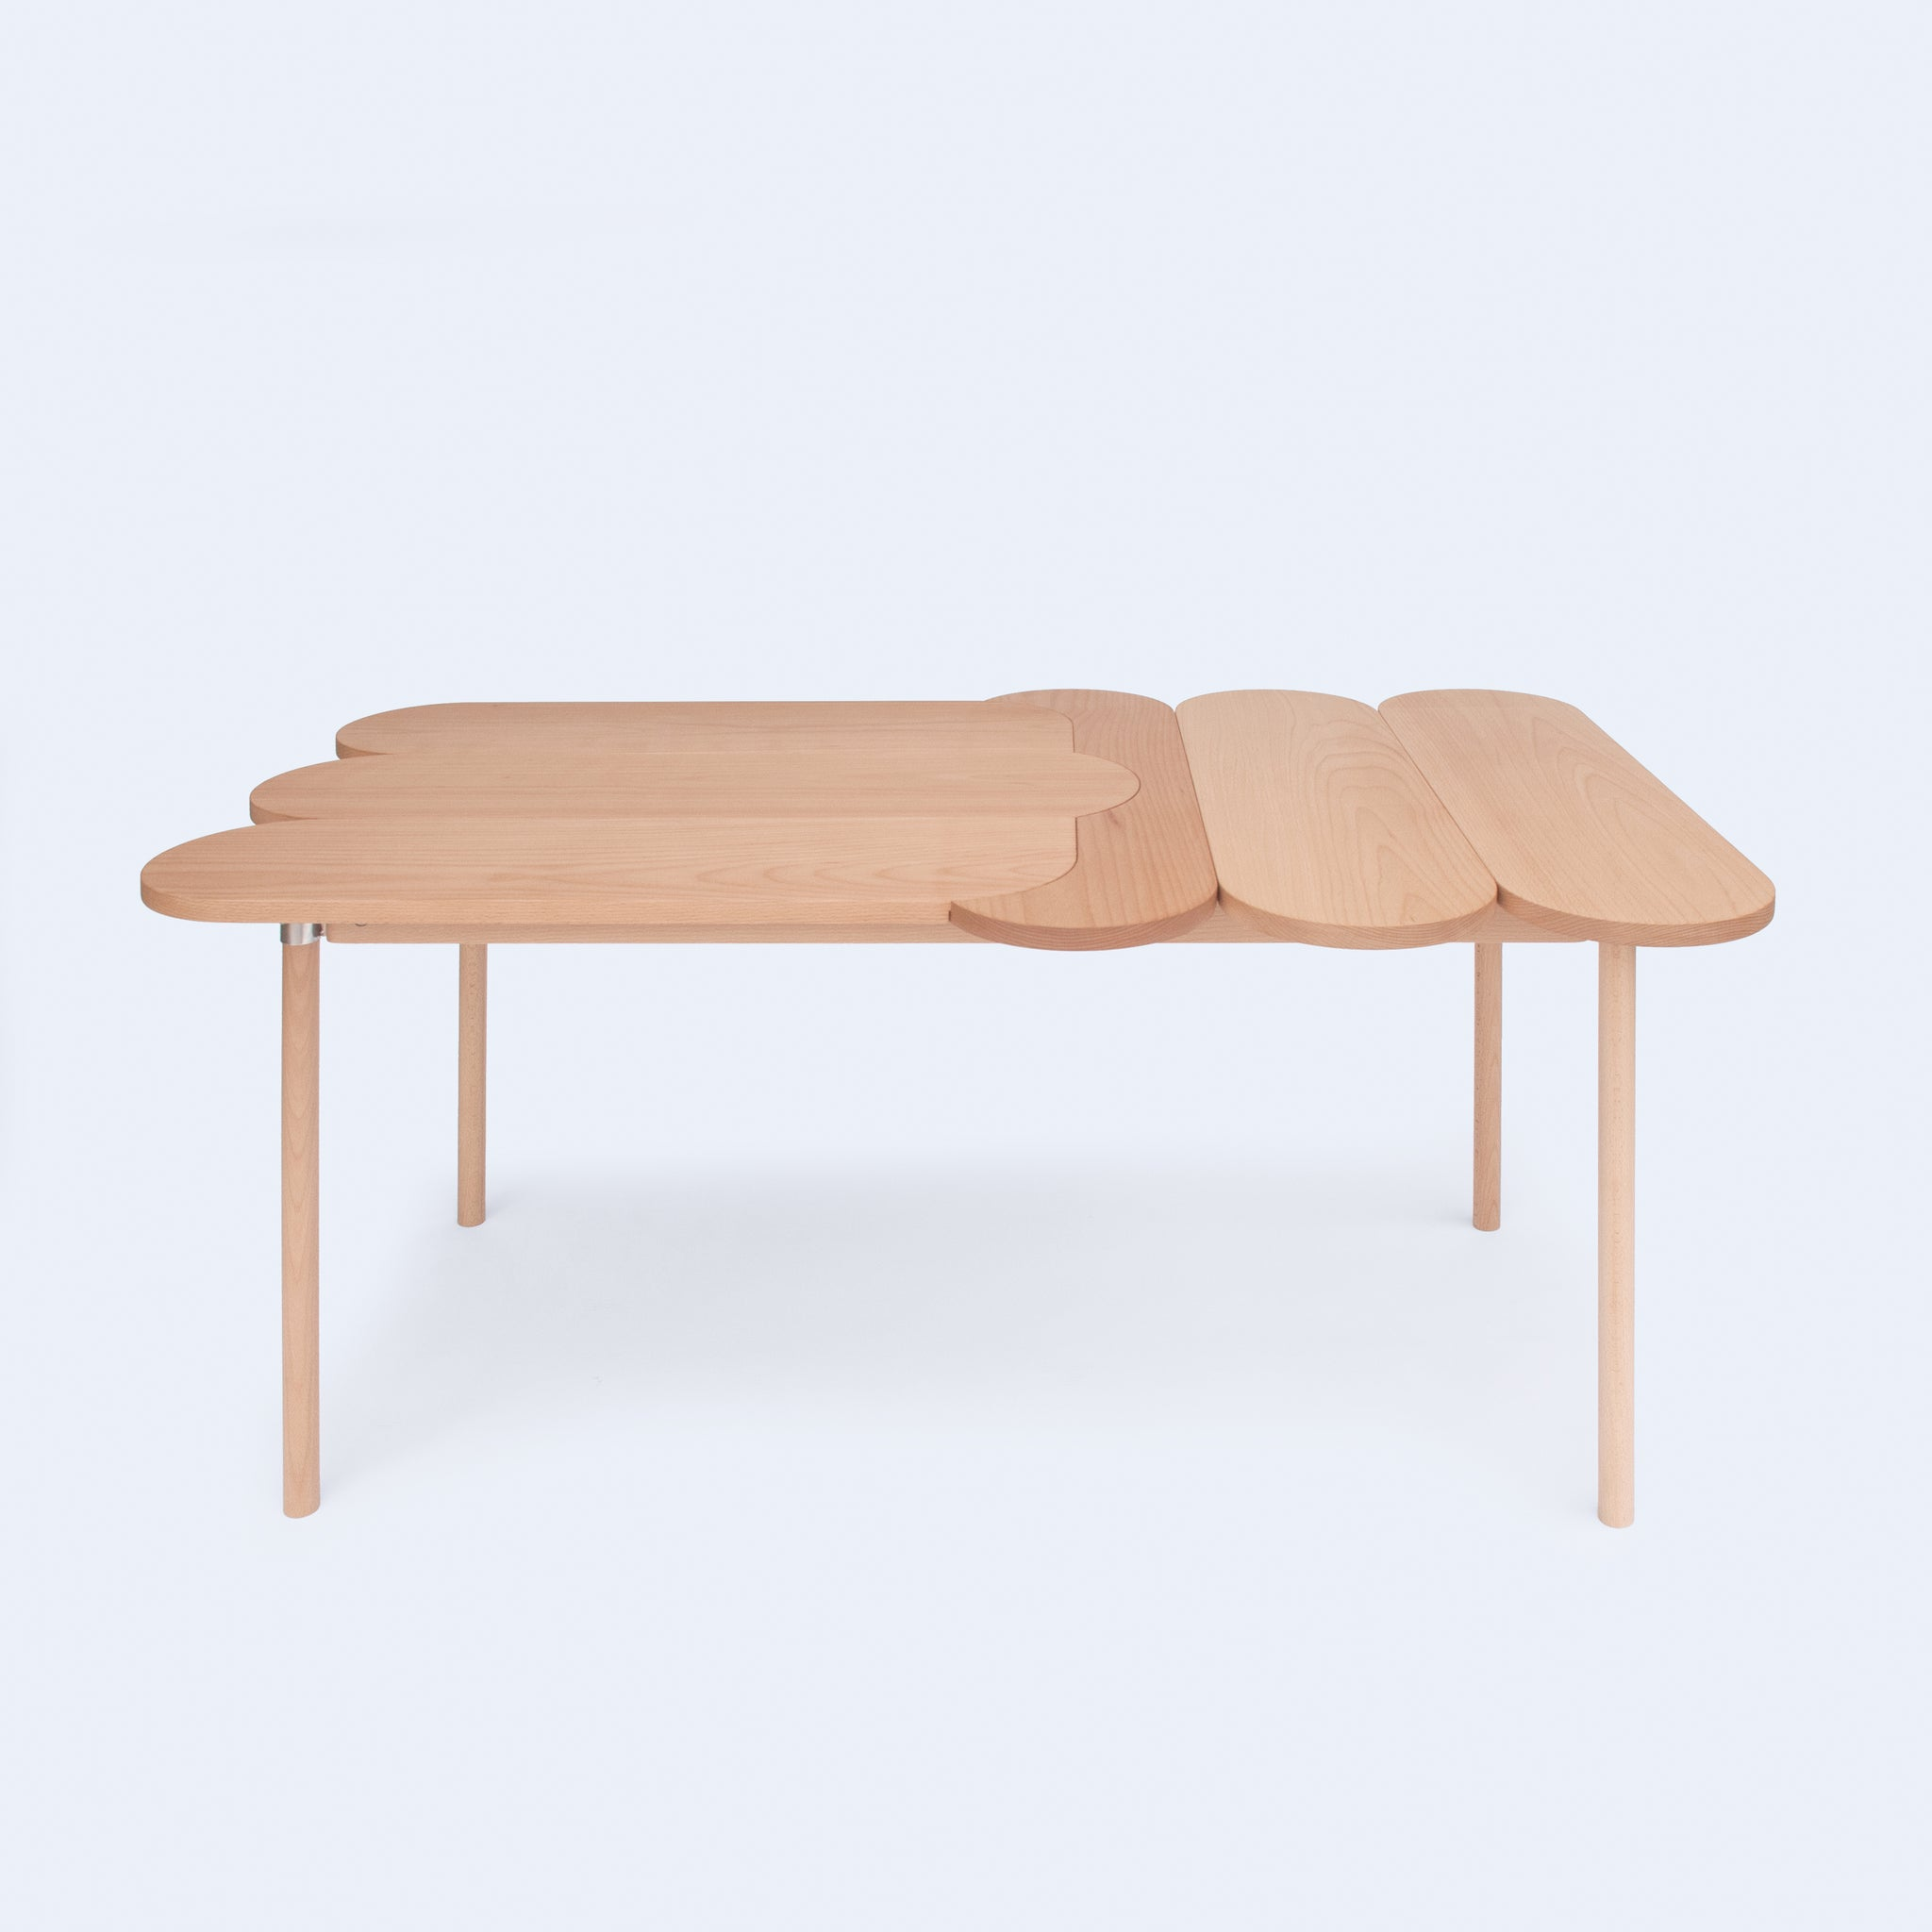 Oval solid wood table from Moku+ Collection by 24d-studio